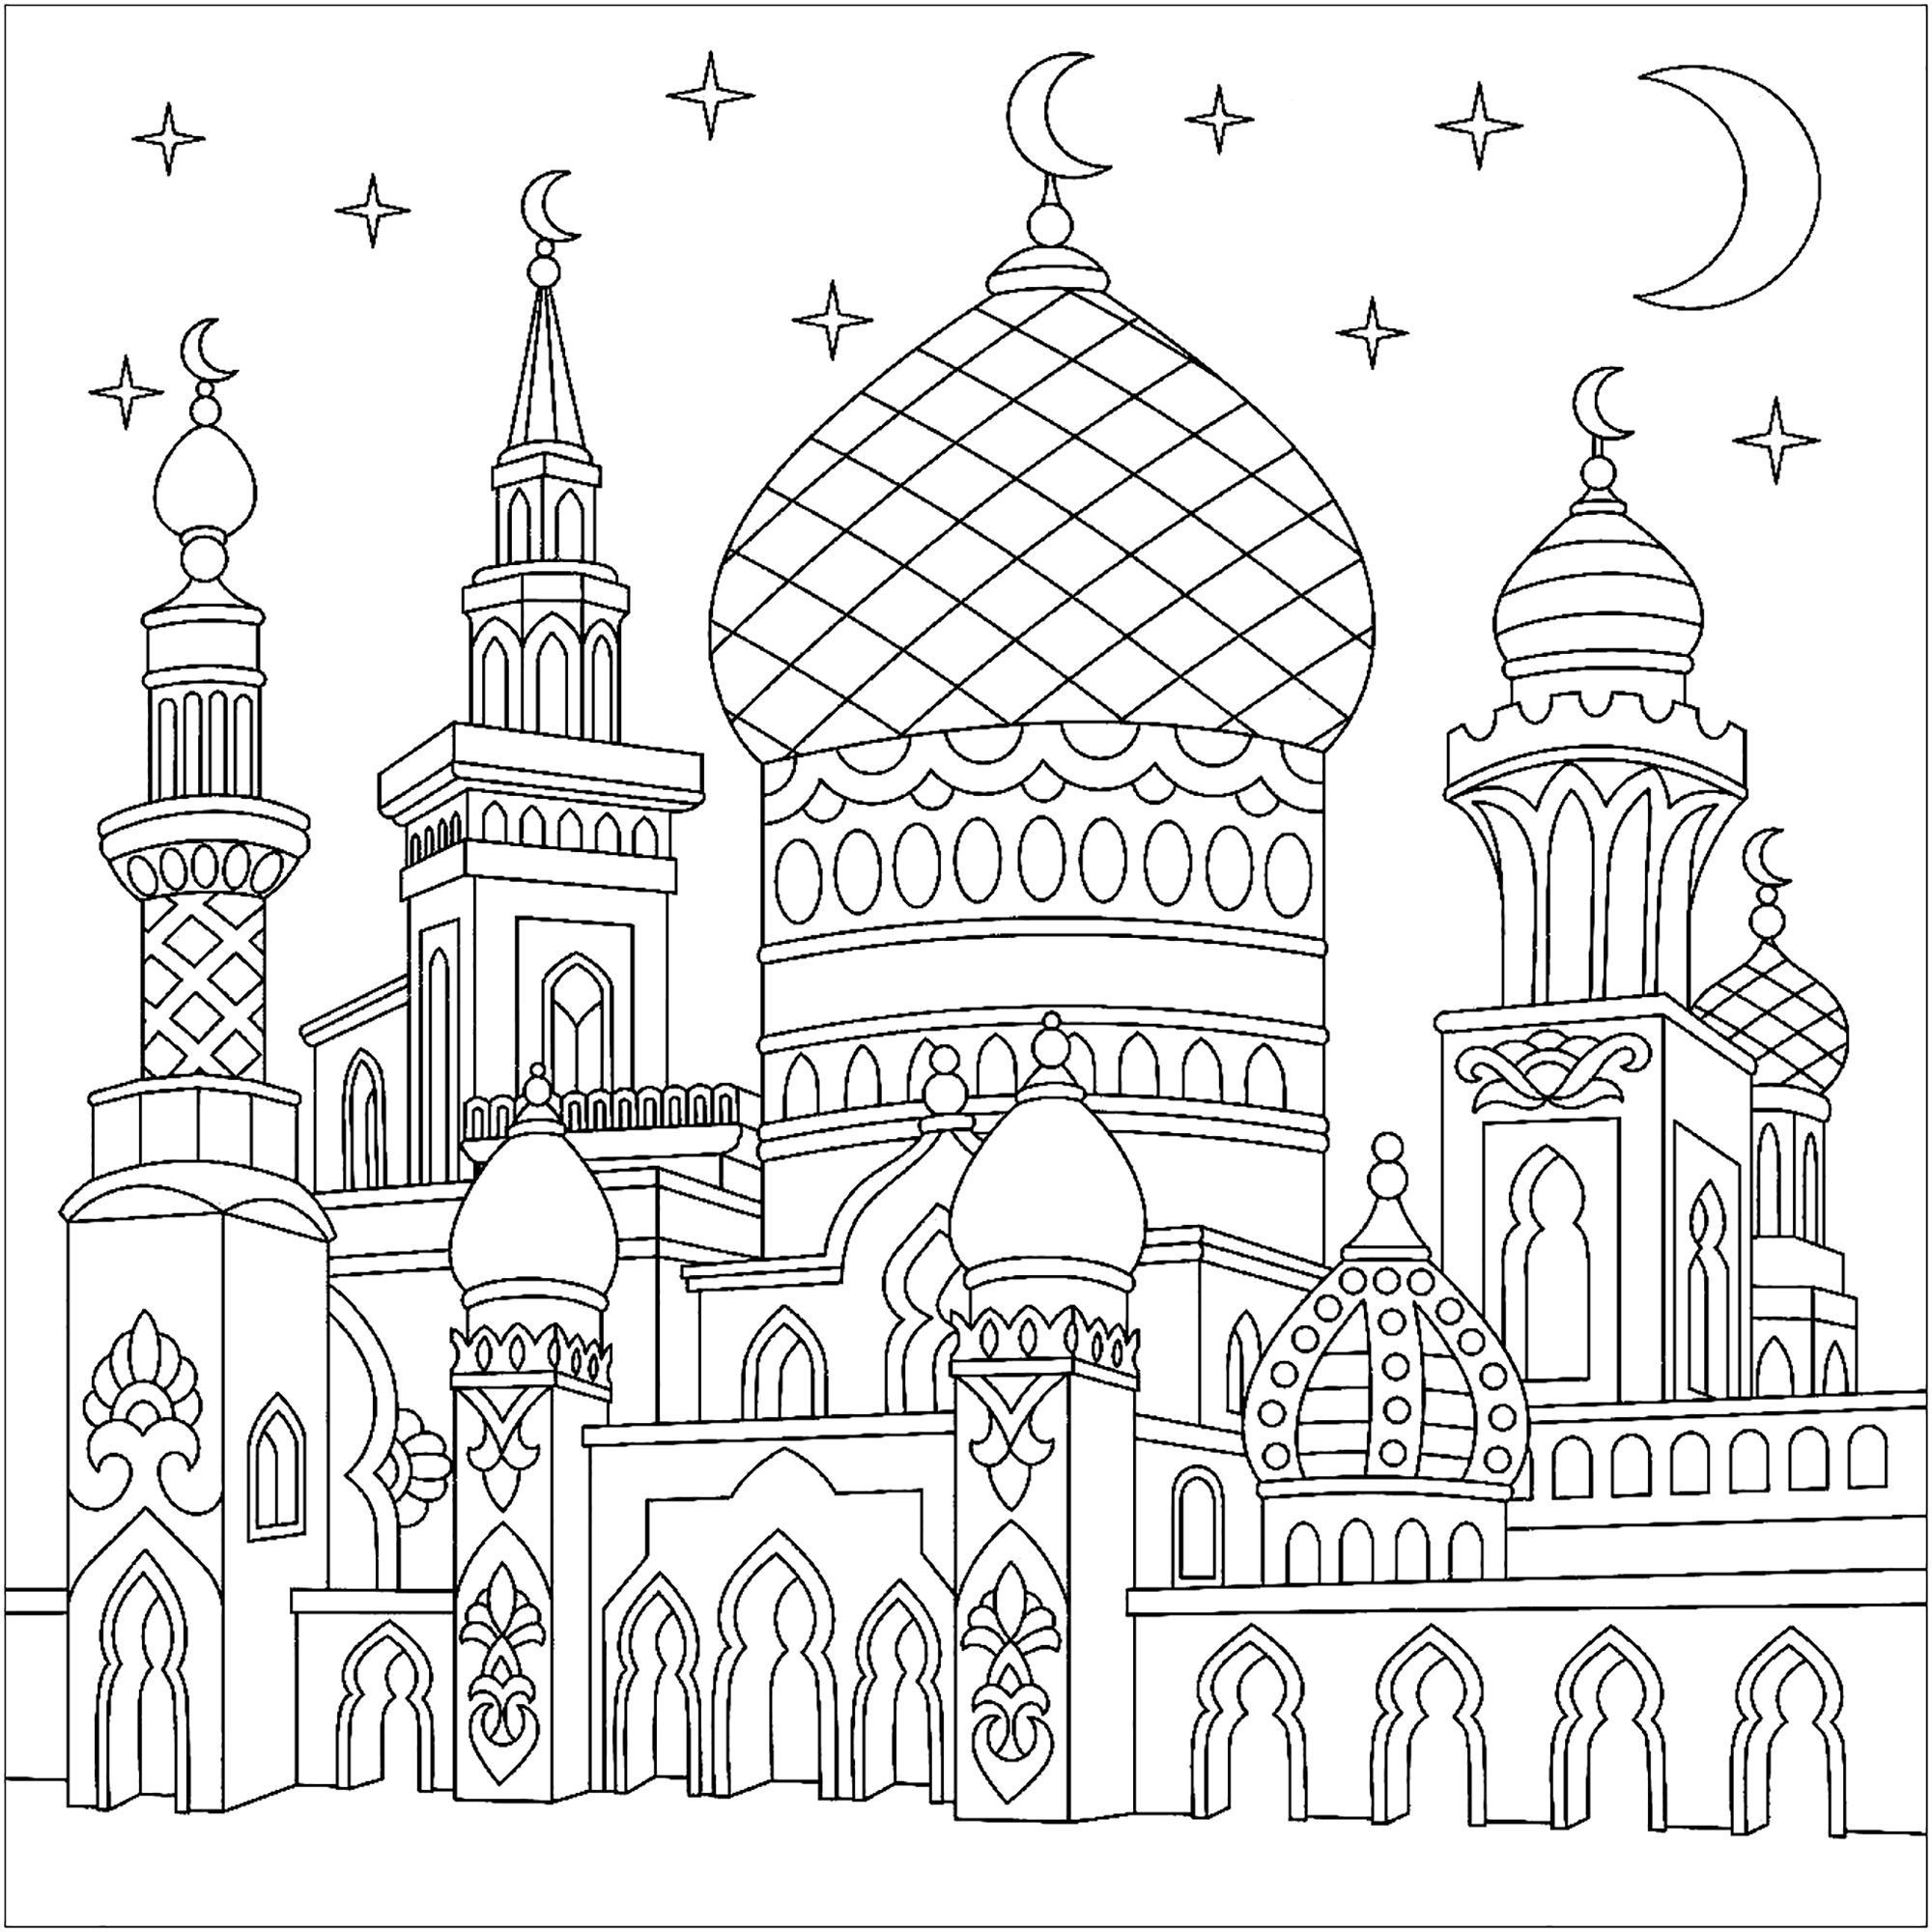 Pin By Nandini Acharya Rao On Coloring Pages Islamic Art Animal